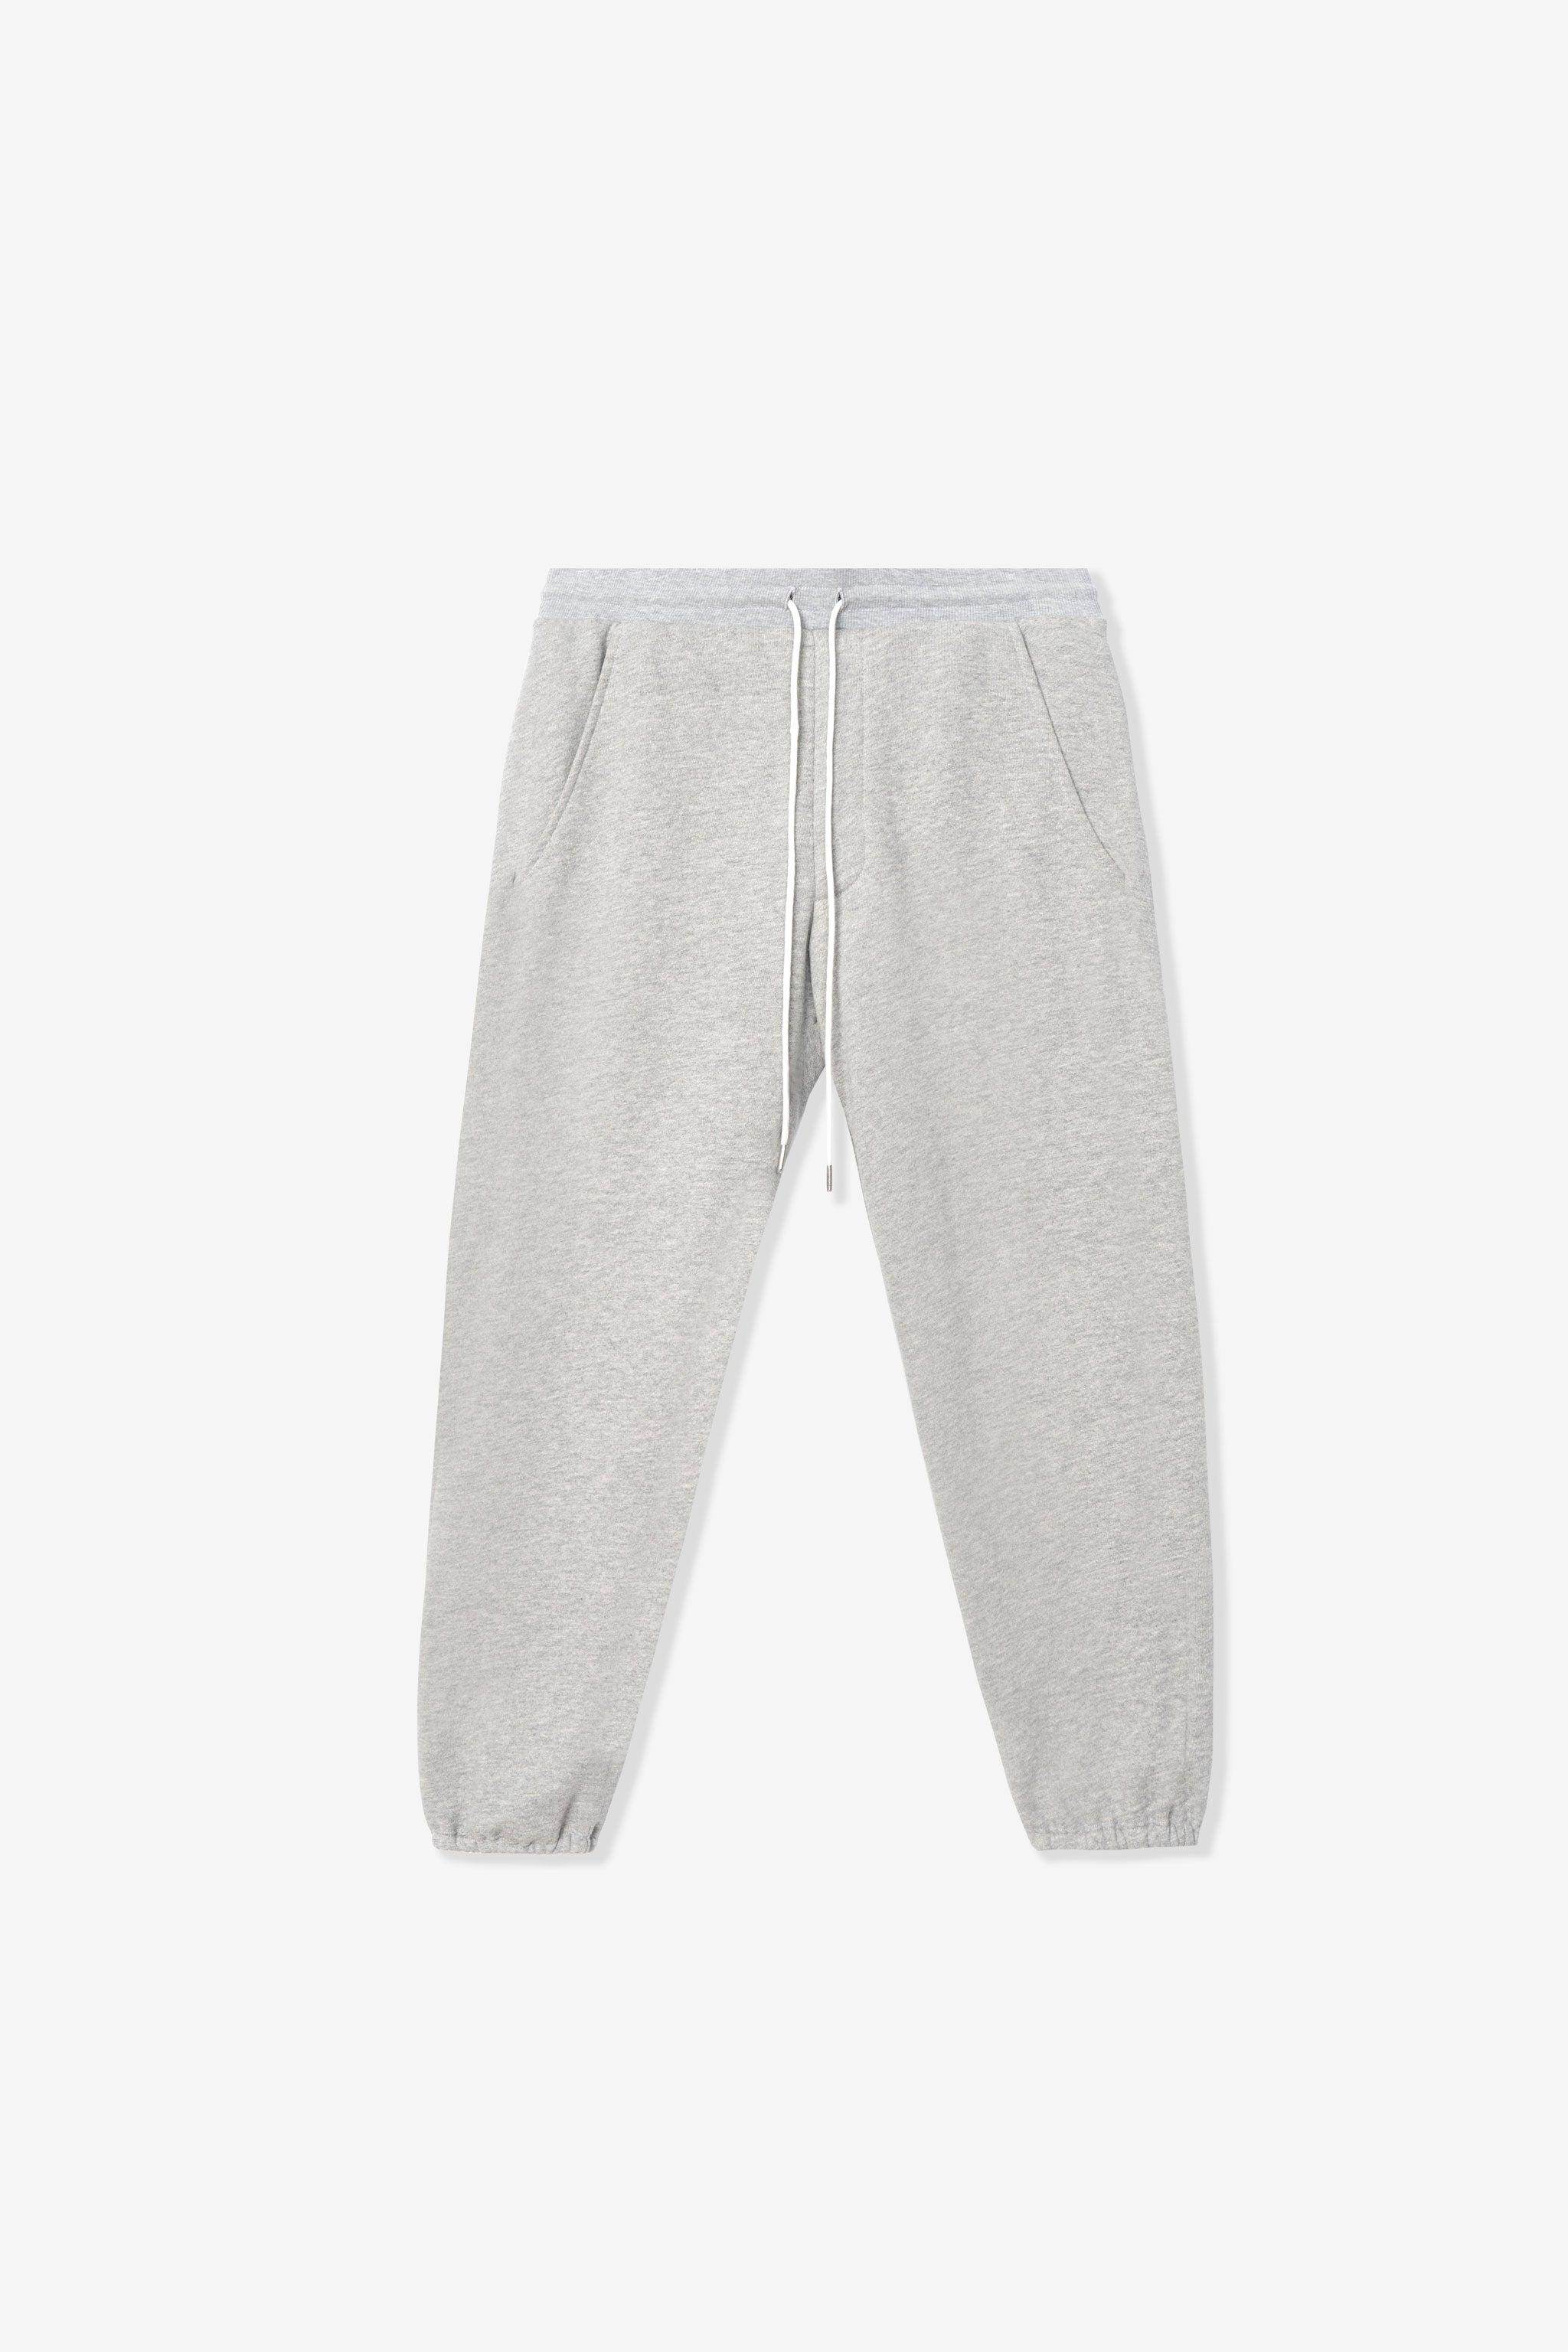 Goodfight Cheshire Crop Sweatpants Heather Grey